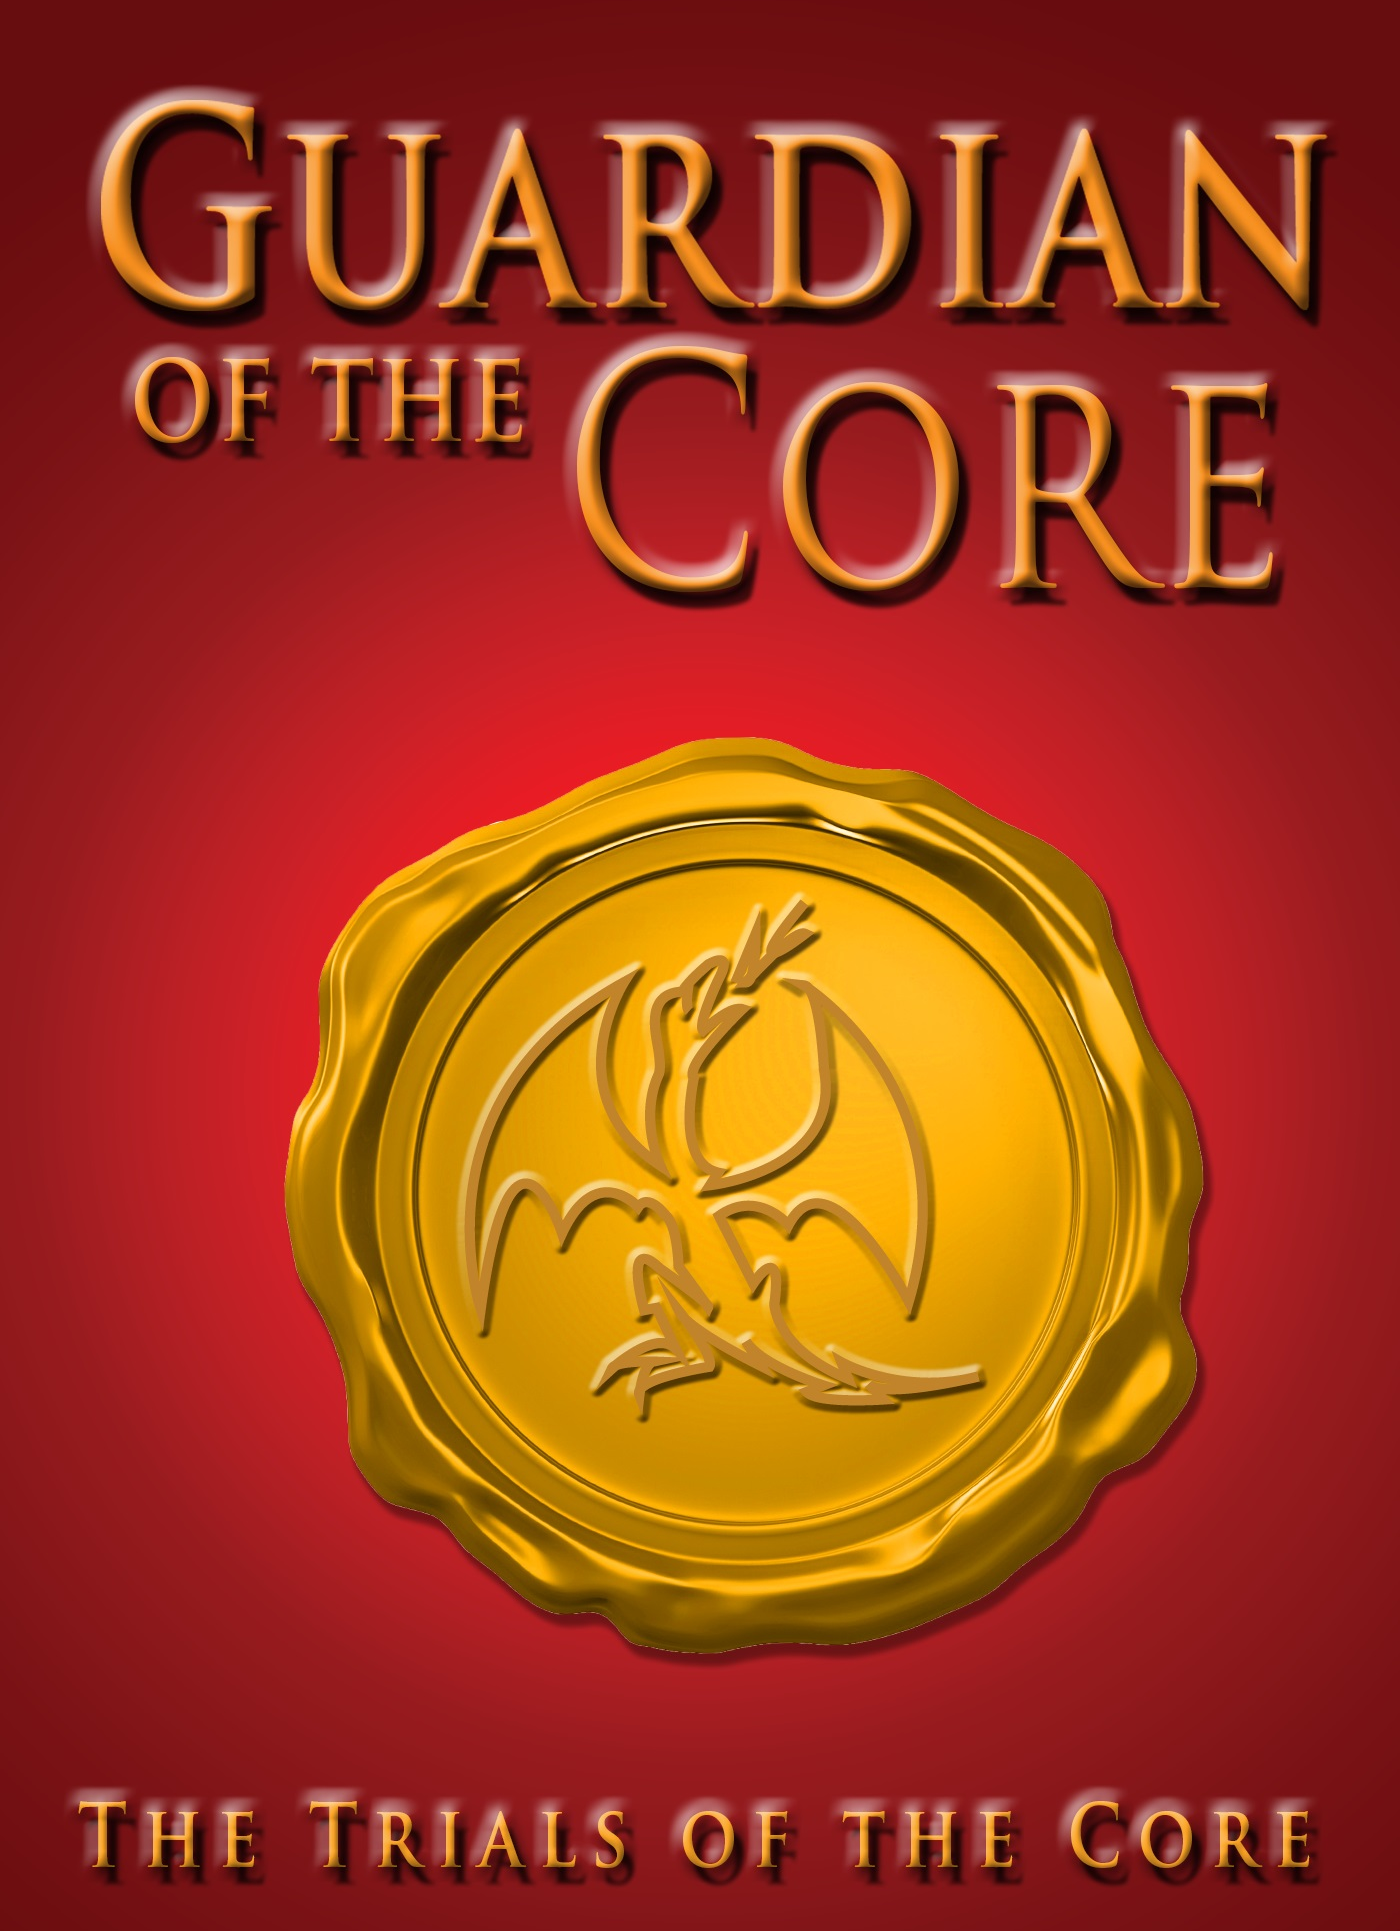 The Trials of the Core